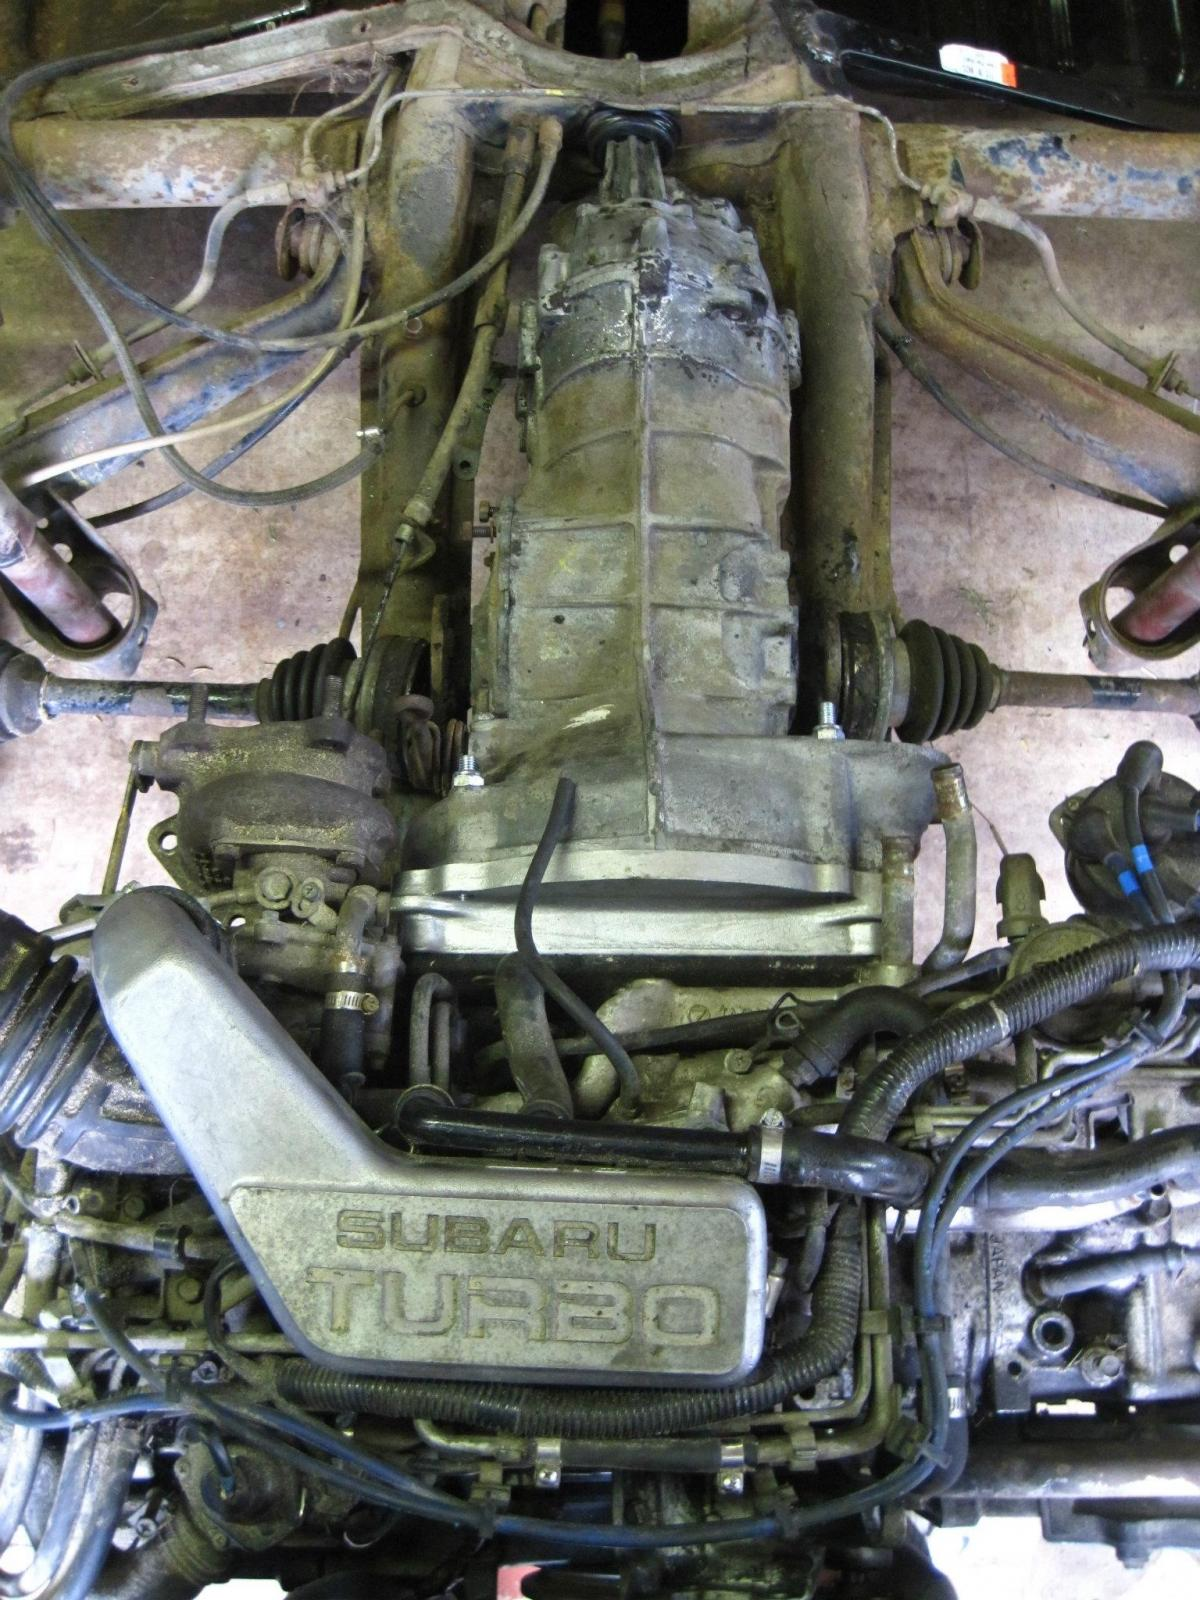 Volkswagen Beetle Ignition Wiring Diagram Thesambacom Beetle Late